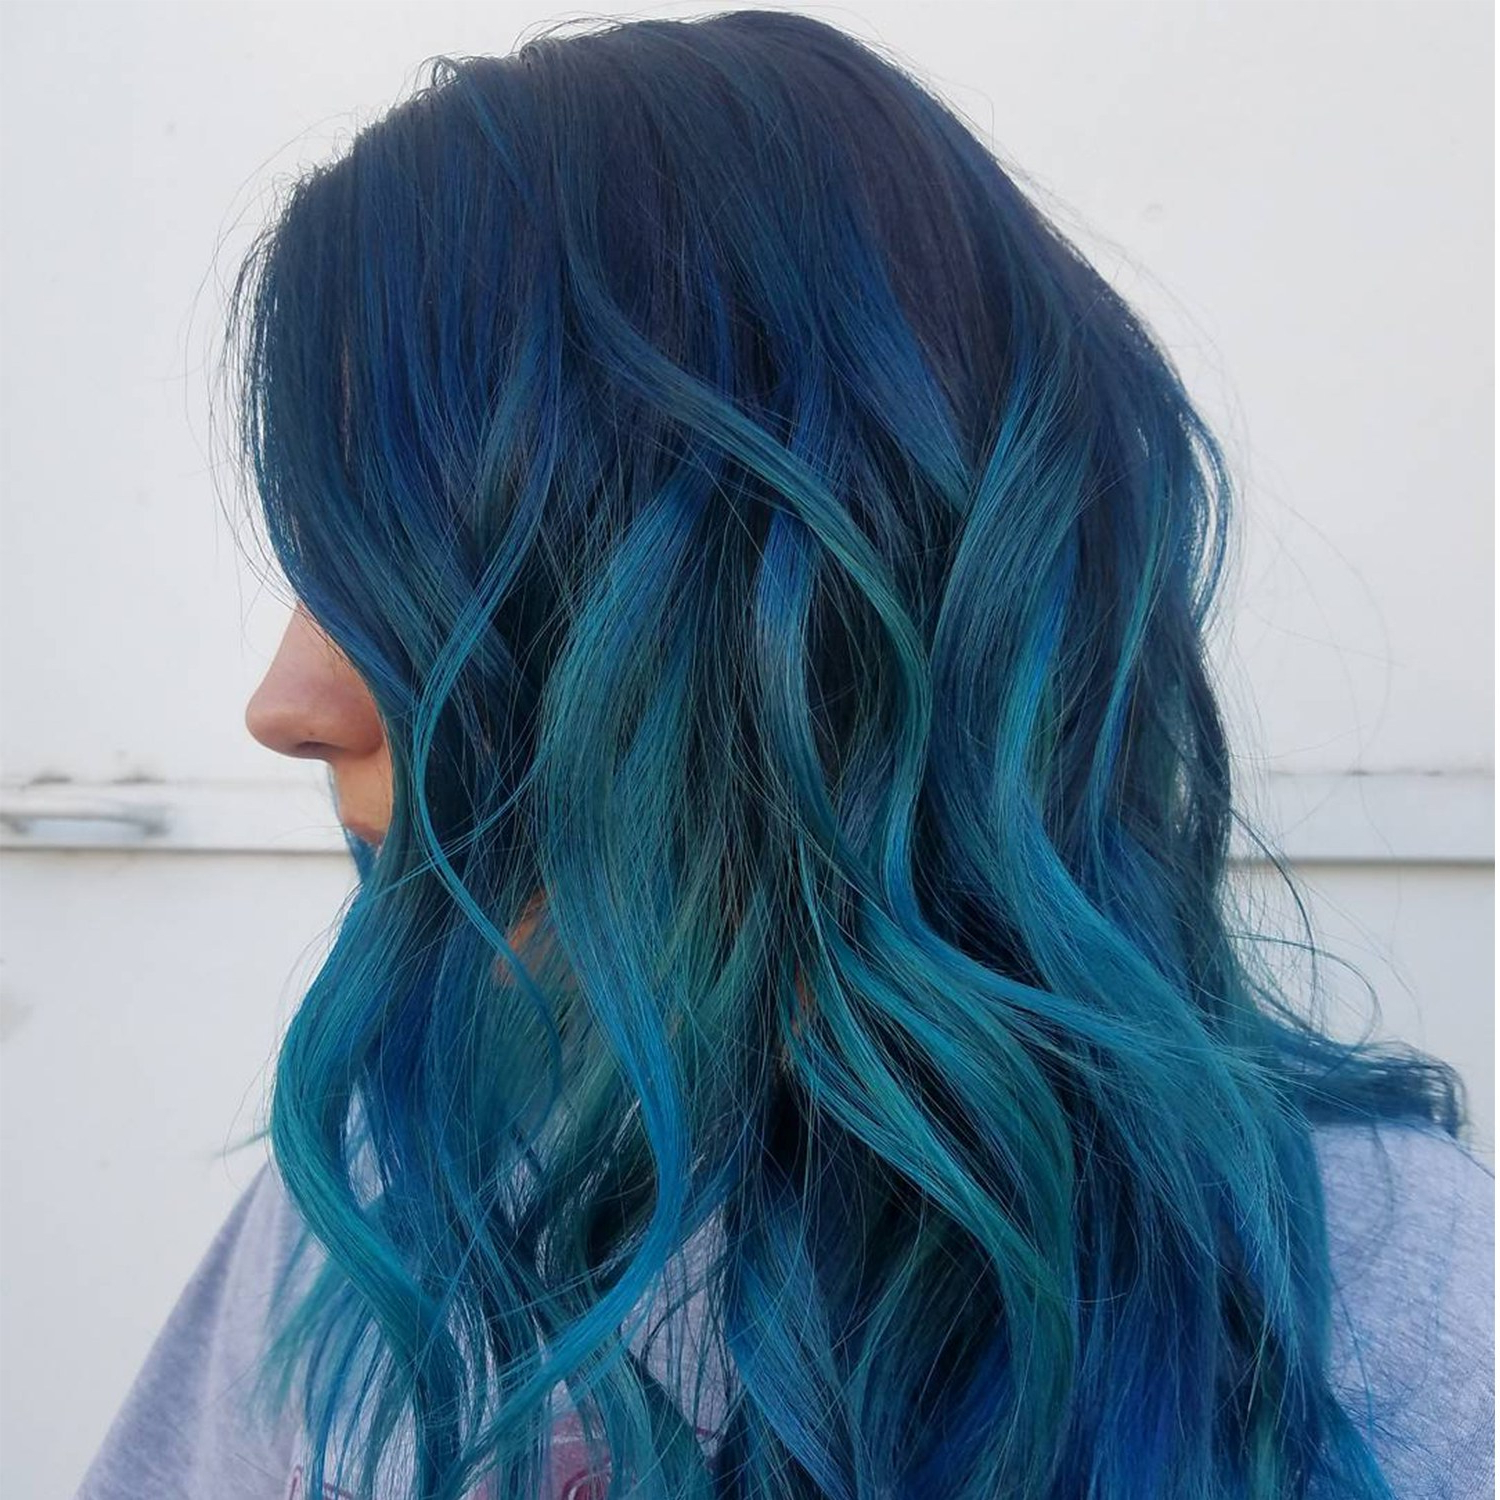 Ocean Blue Hair Colors Are Making Waves On Instagram This For Famous Black And Denim Blue Waves Hairstyles (View 13 of 20)